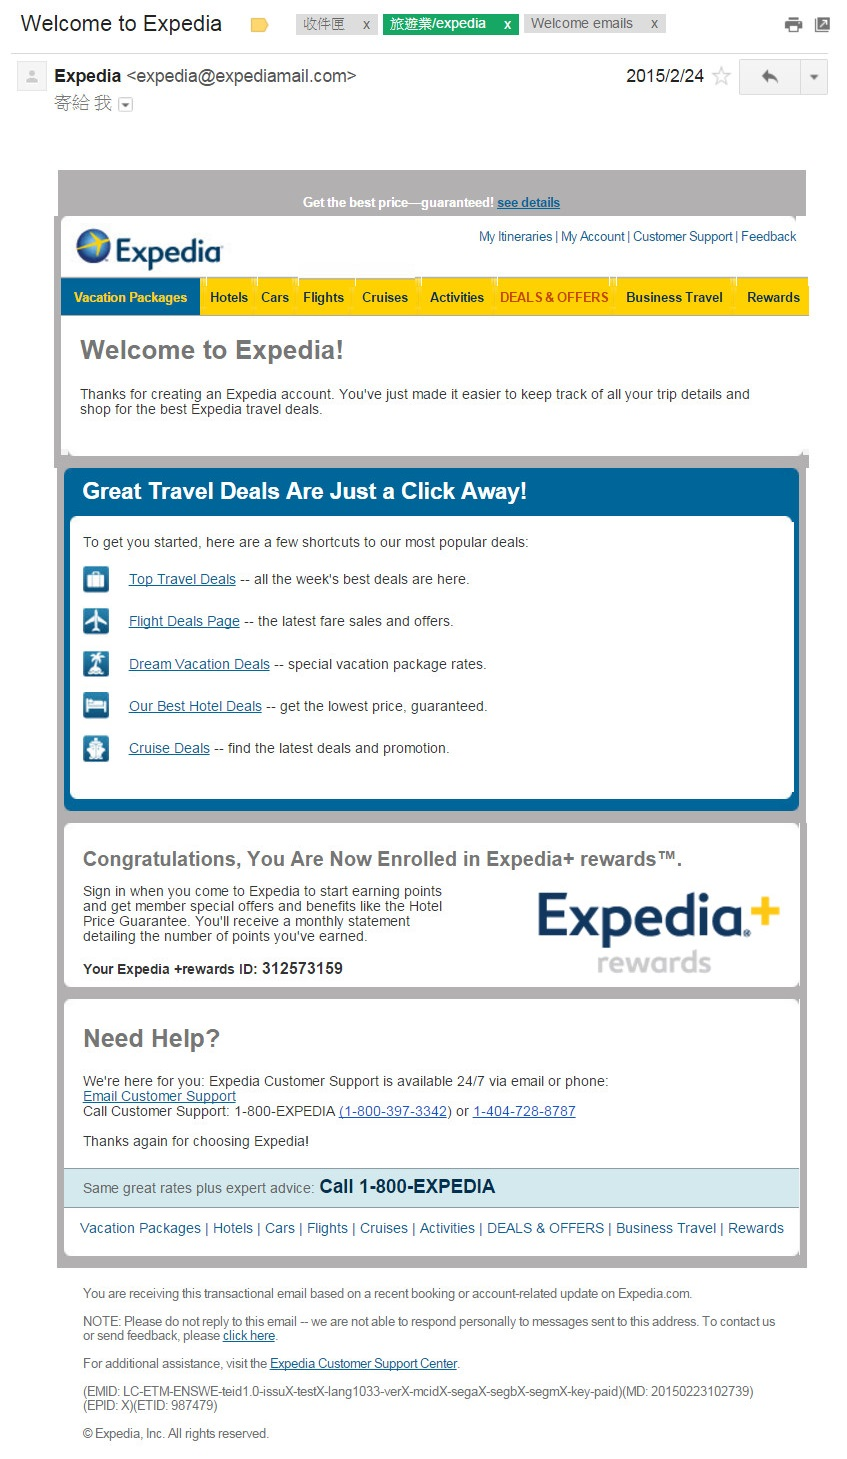 Expedia_welcome_email